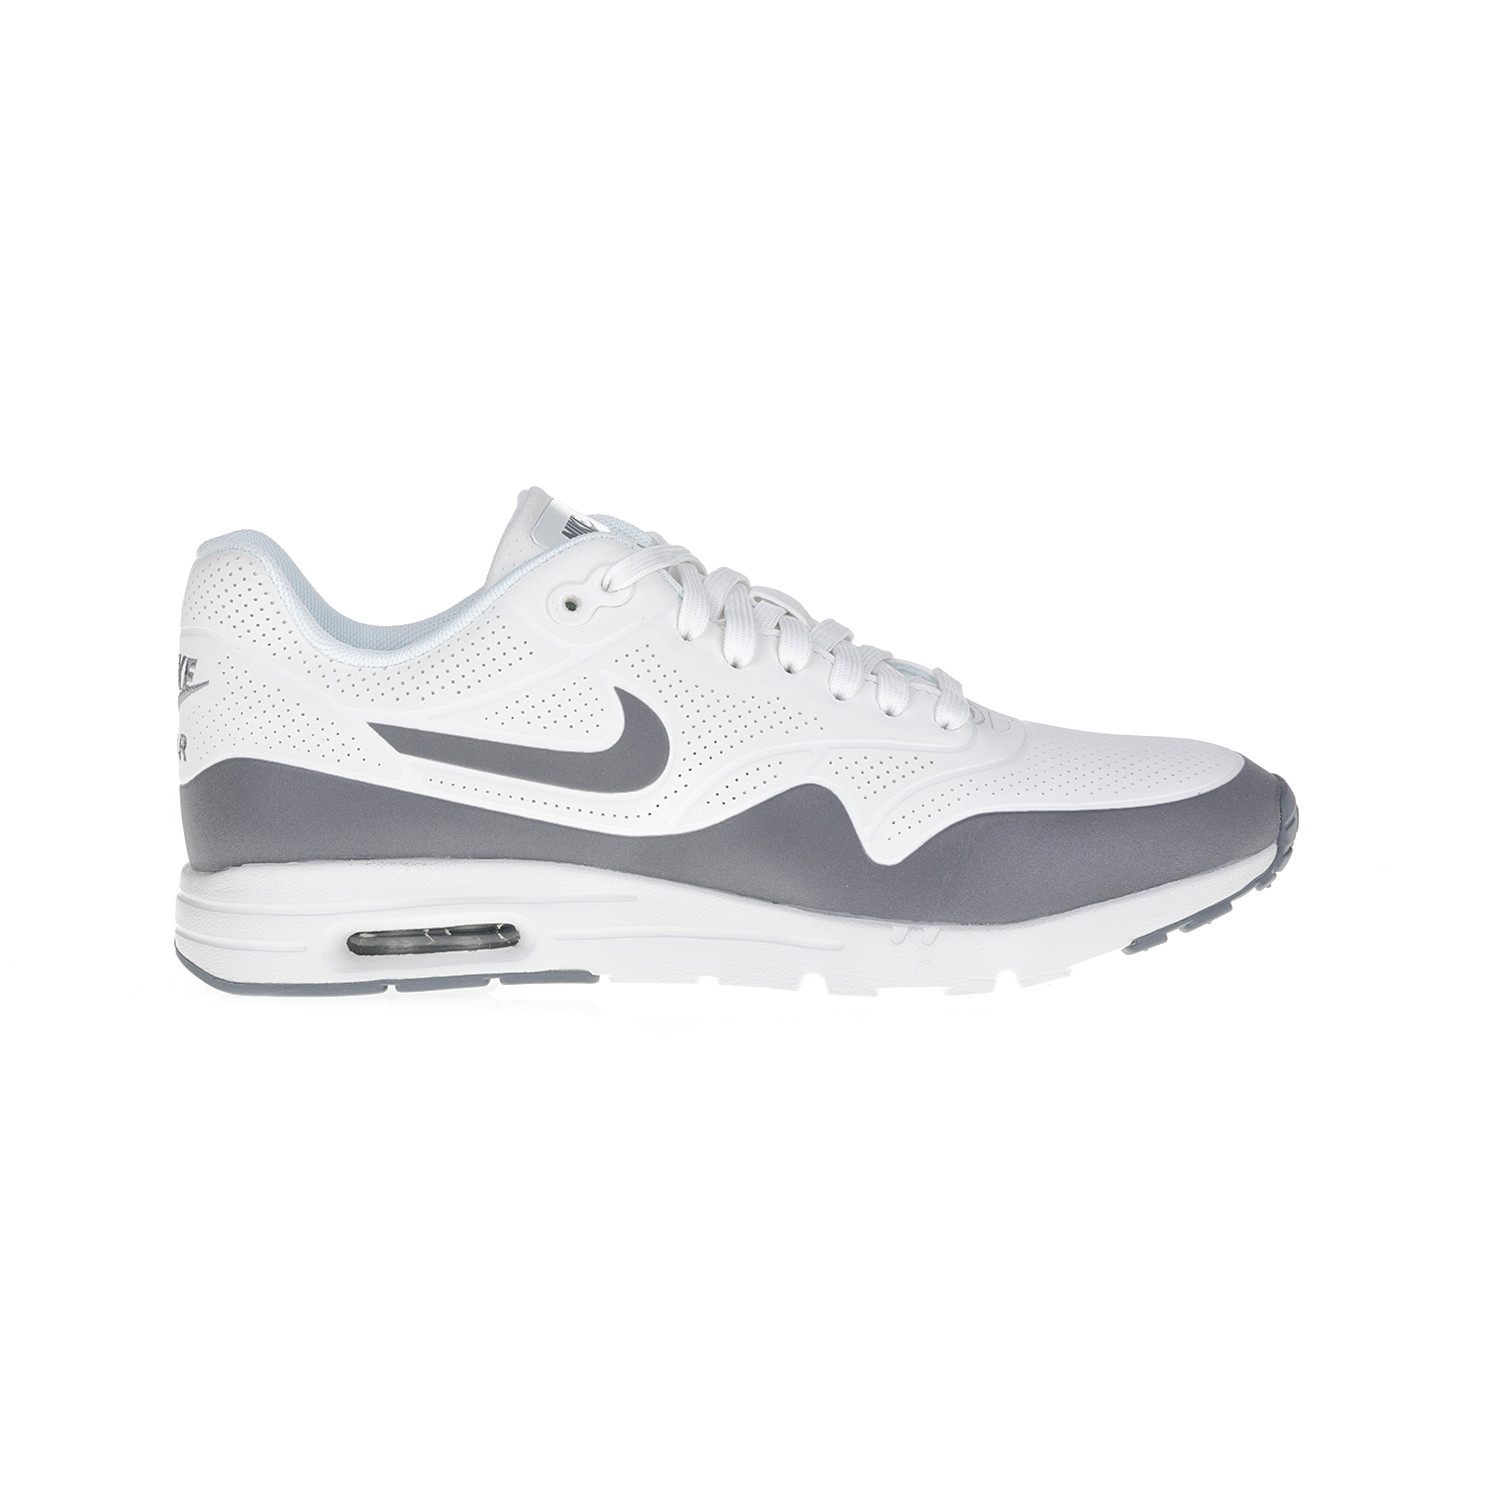 f3a54f35452 Factoryoutlet NIKE – Γυναικεία αθλητικά παπούτσια AIR MAX 1 ULTRA MOIRE  λευκά-γκρι